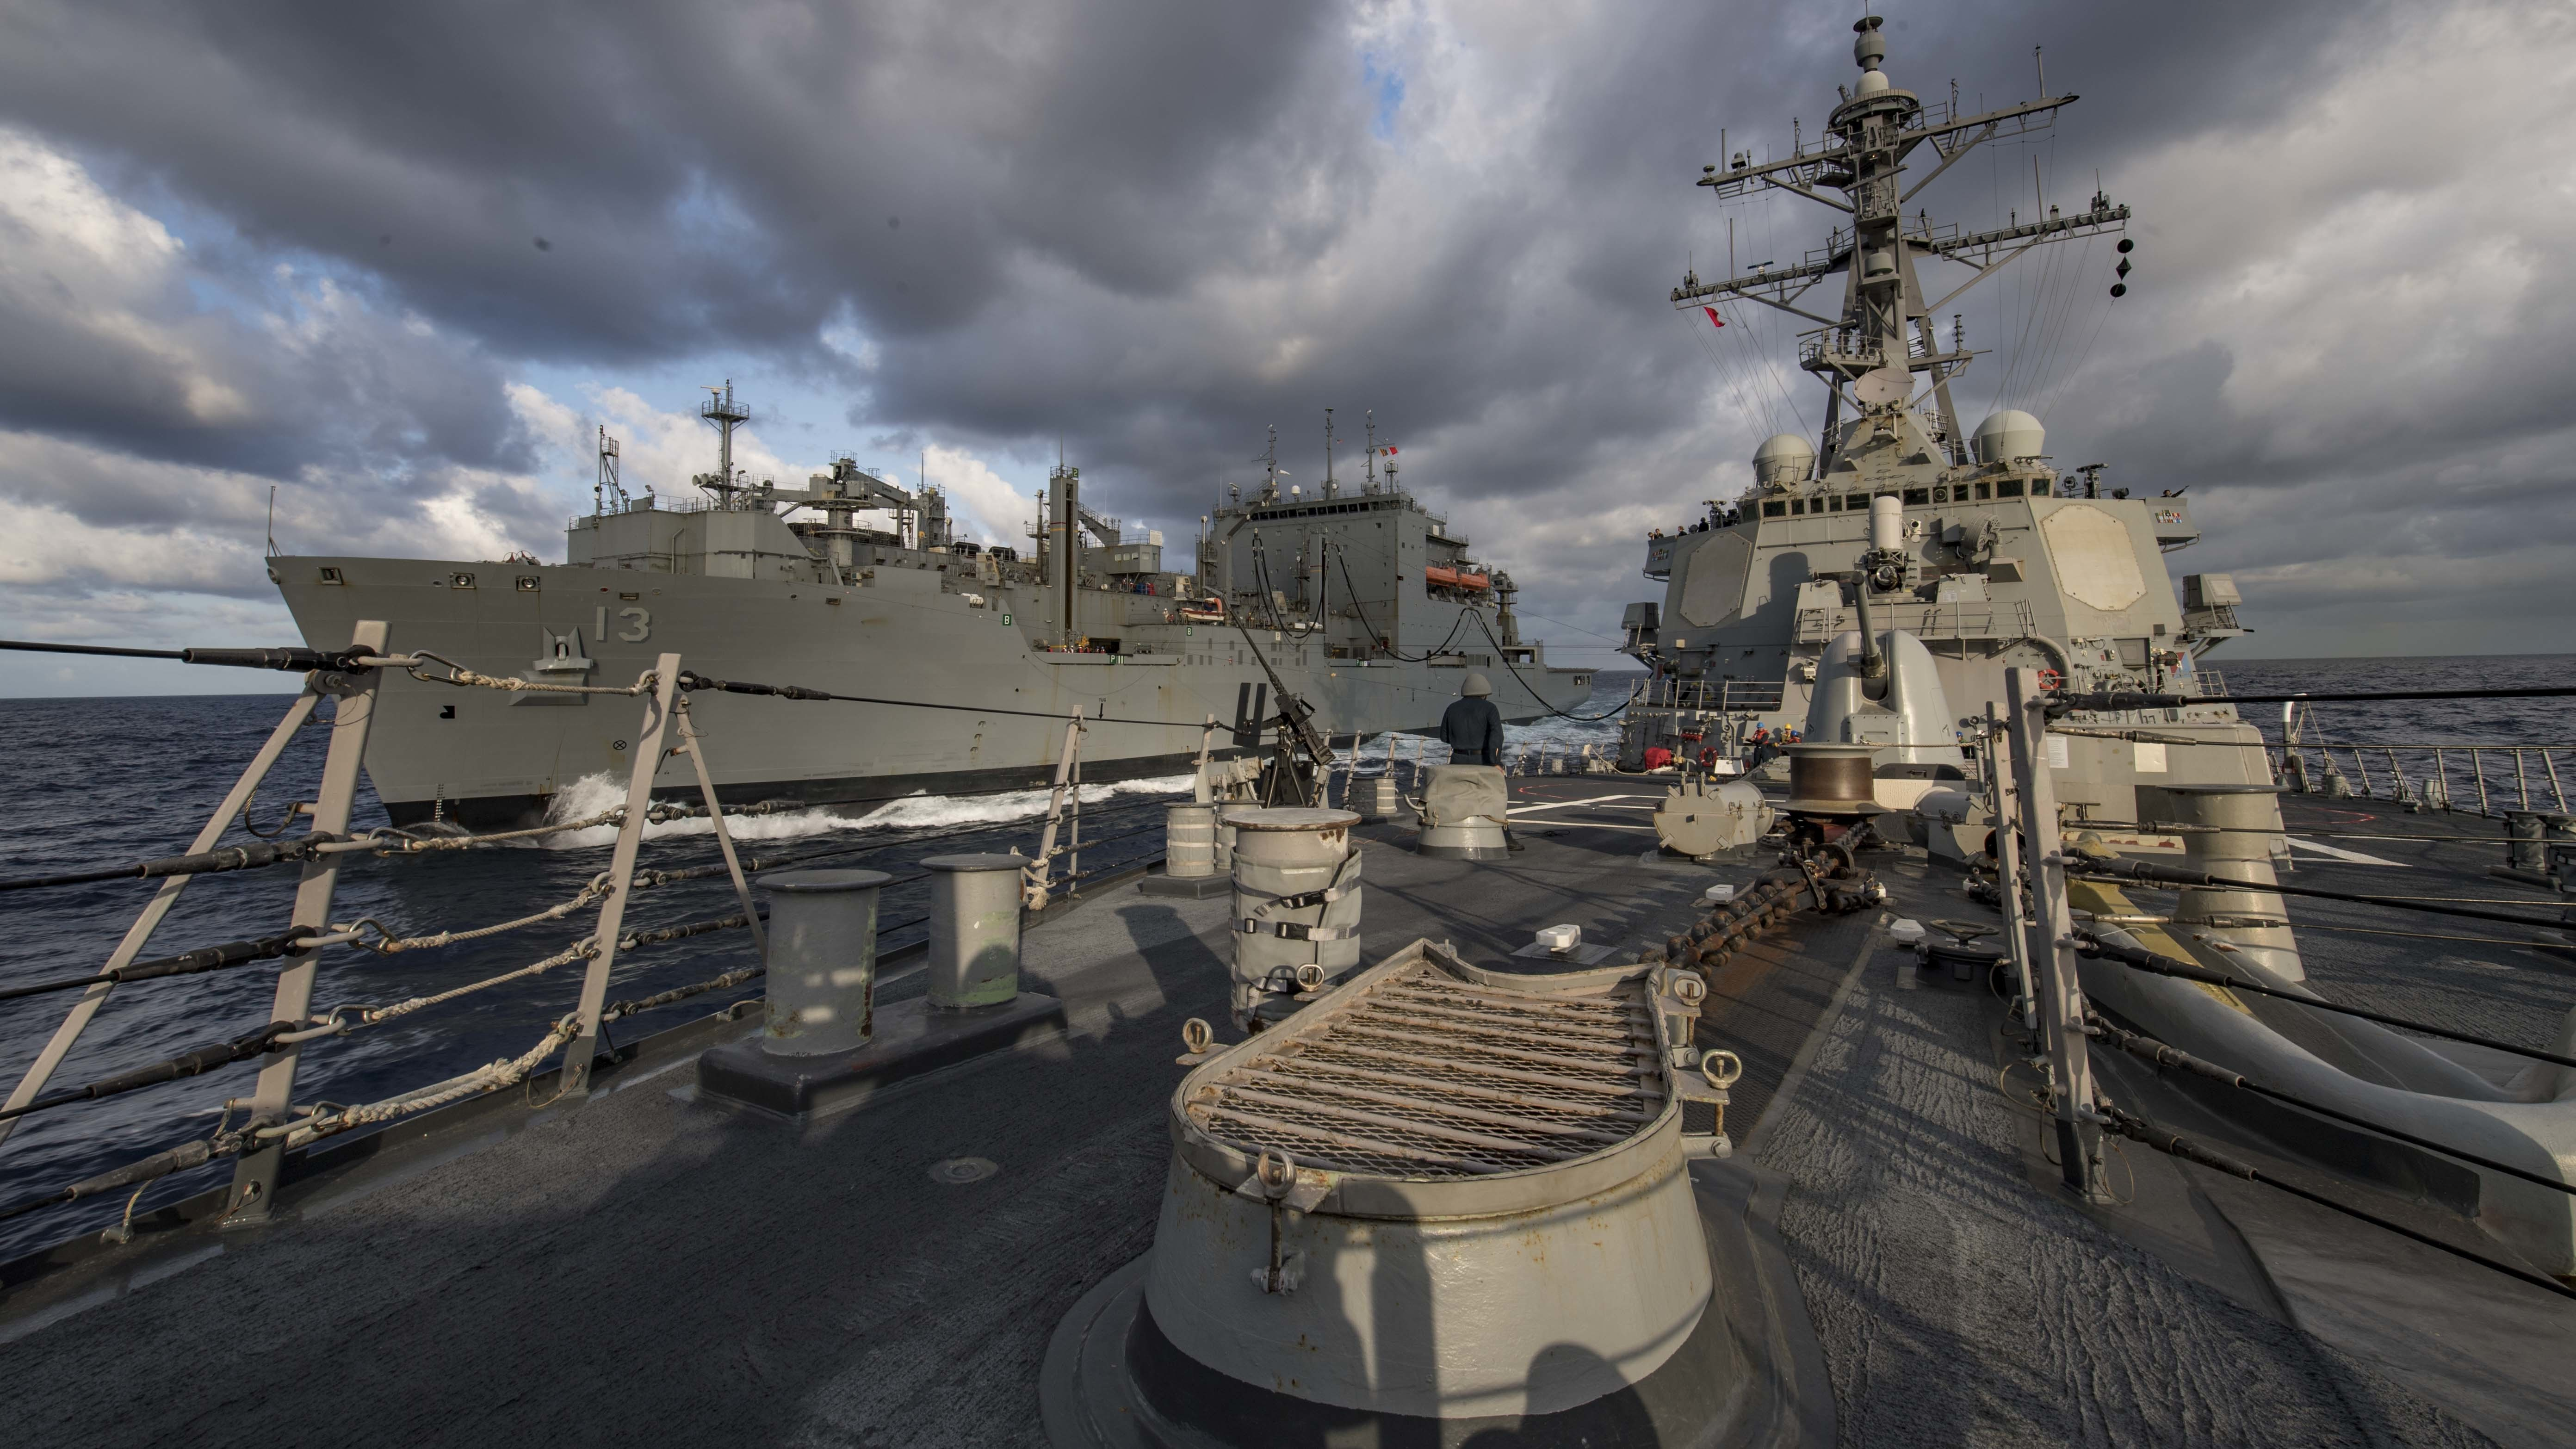 USS Carney (DDG 64) undergoes a replenishment-at-sea with the Lewis and Clark-class dry cargo ship USNS Medgar Evers (T-AKE-13), July 16, 2019.